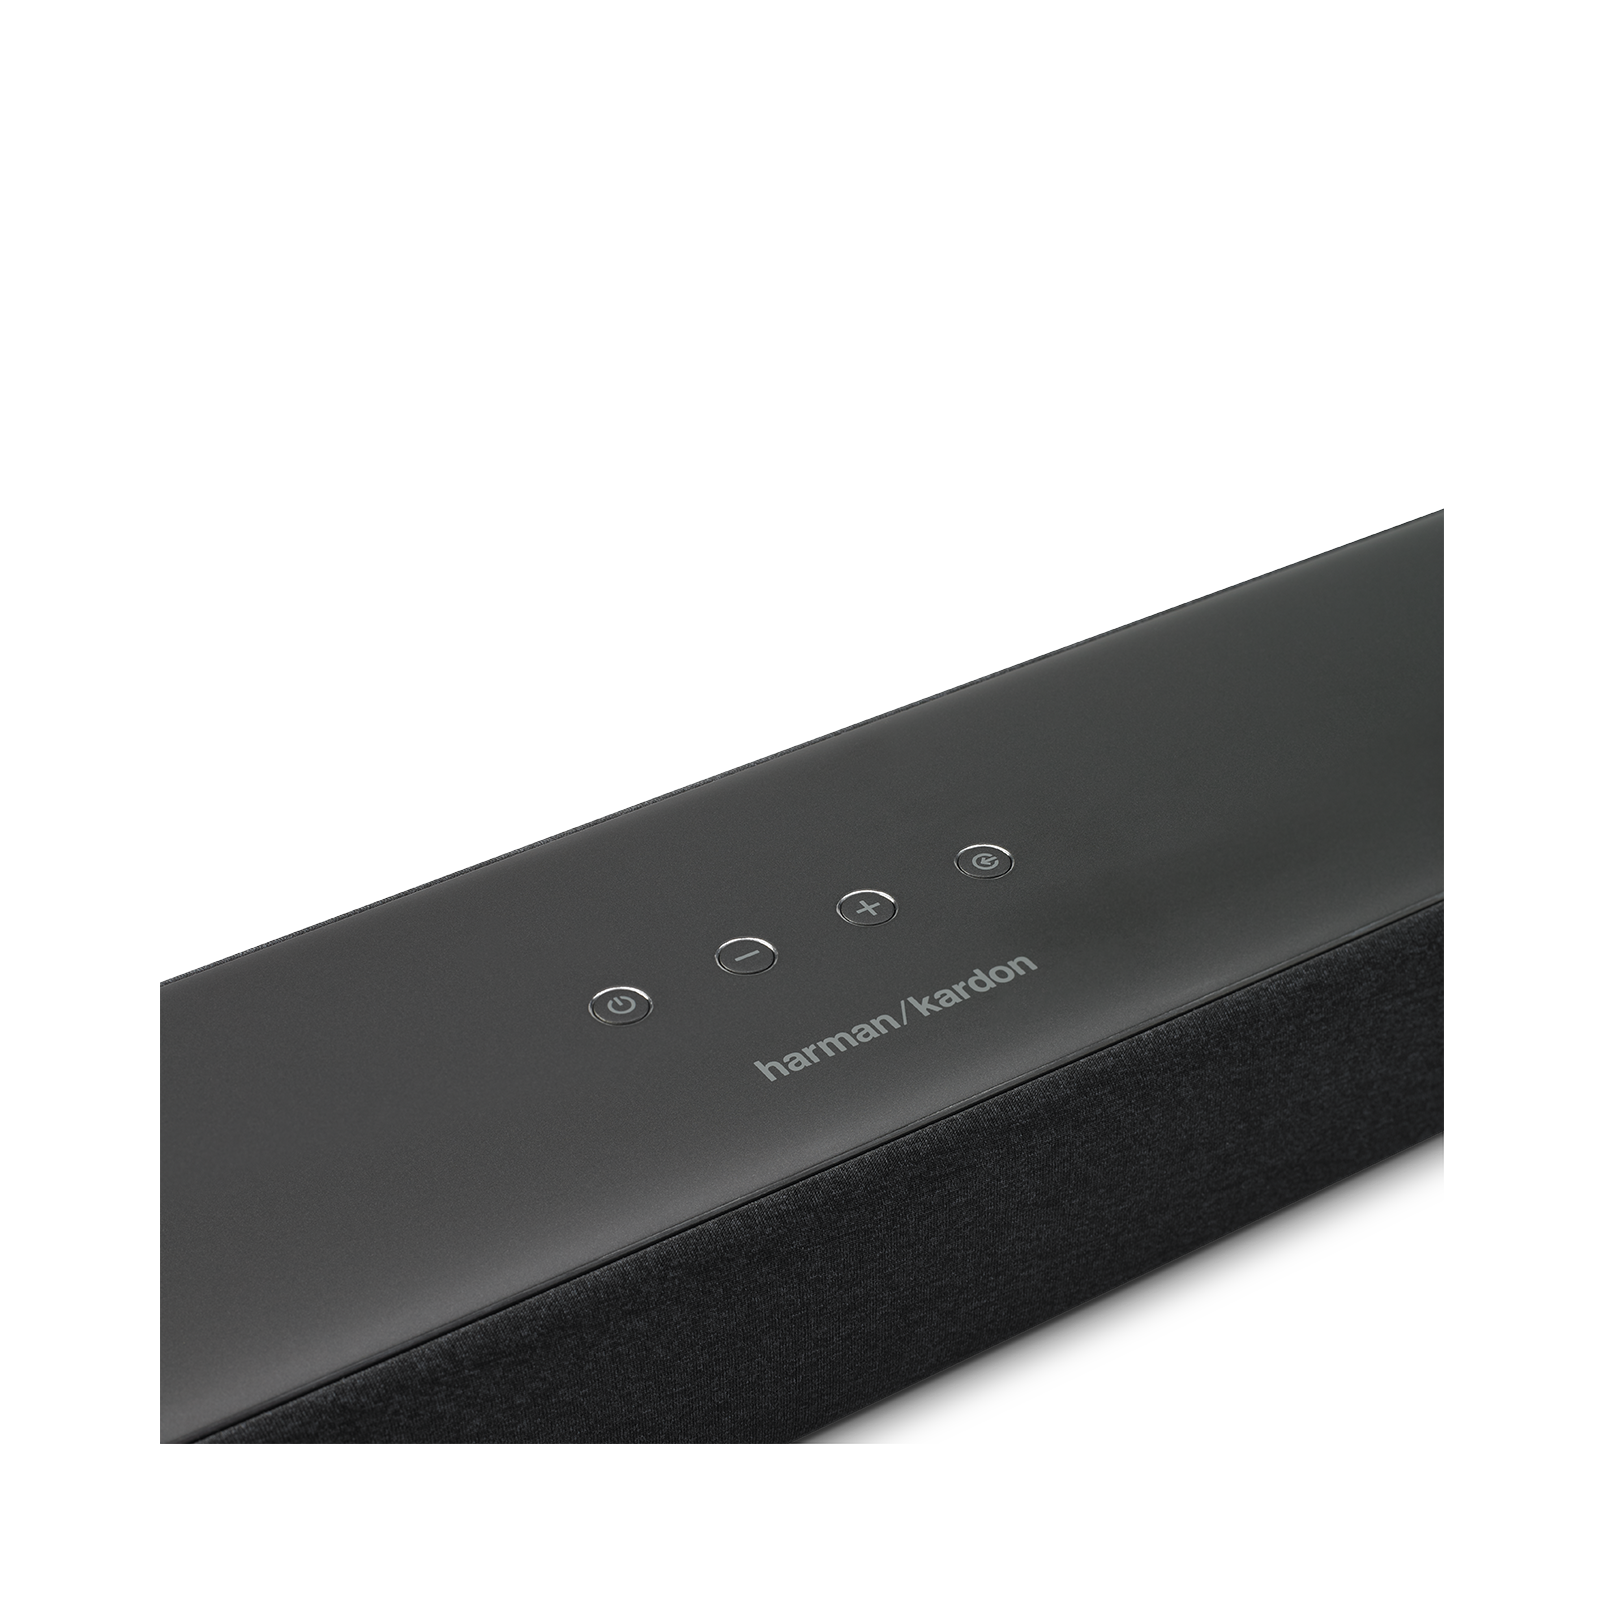 Enchant 1300 - Graphite - All in One 13-Channel Soundbar with MultiBeam™ Surround Sound - Detailshot 2